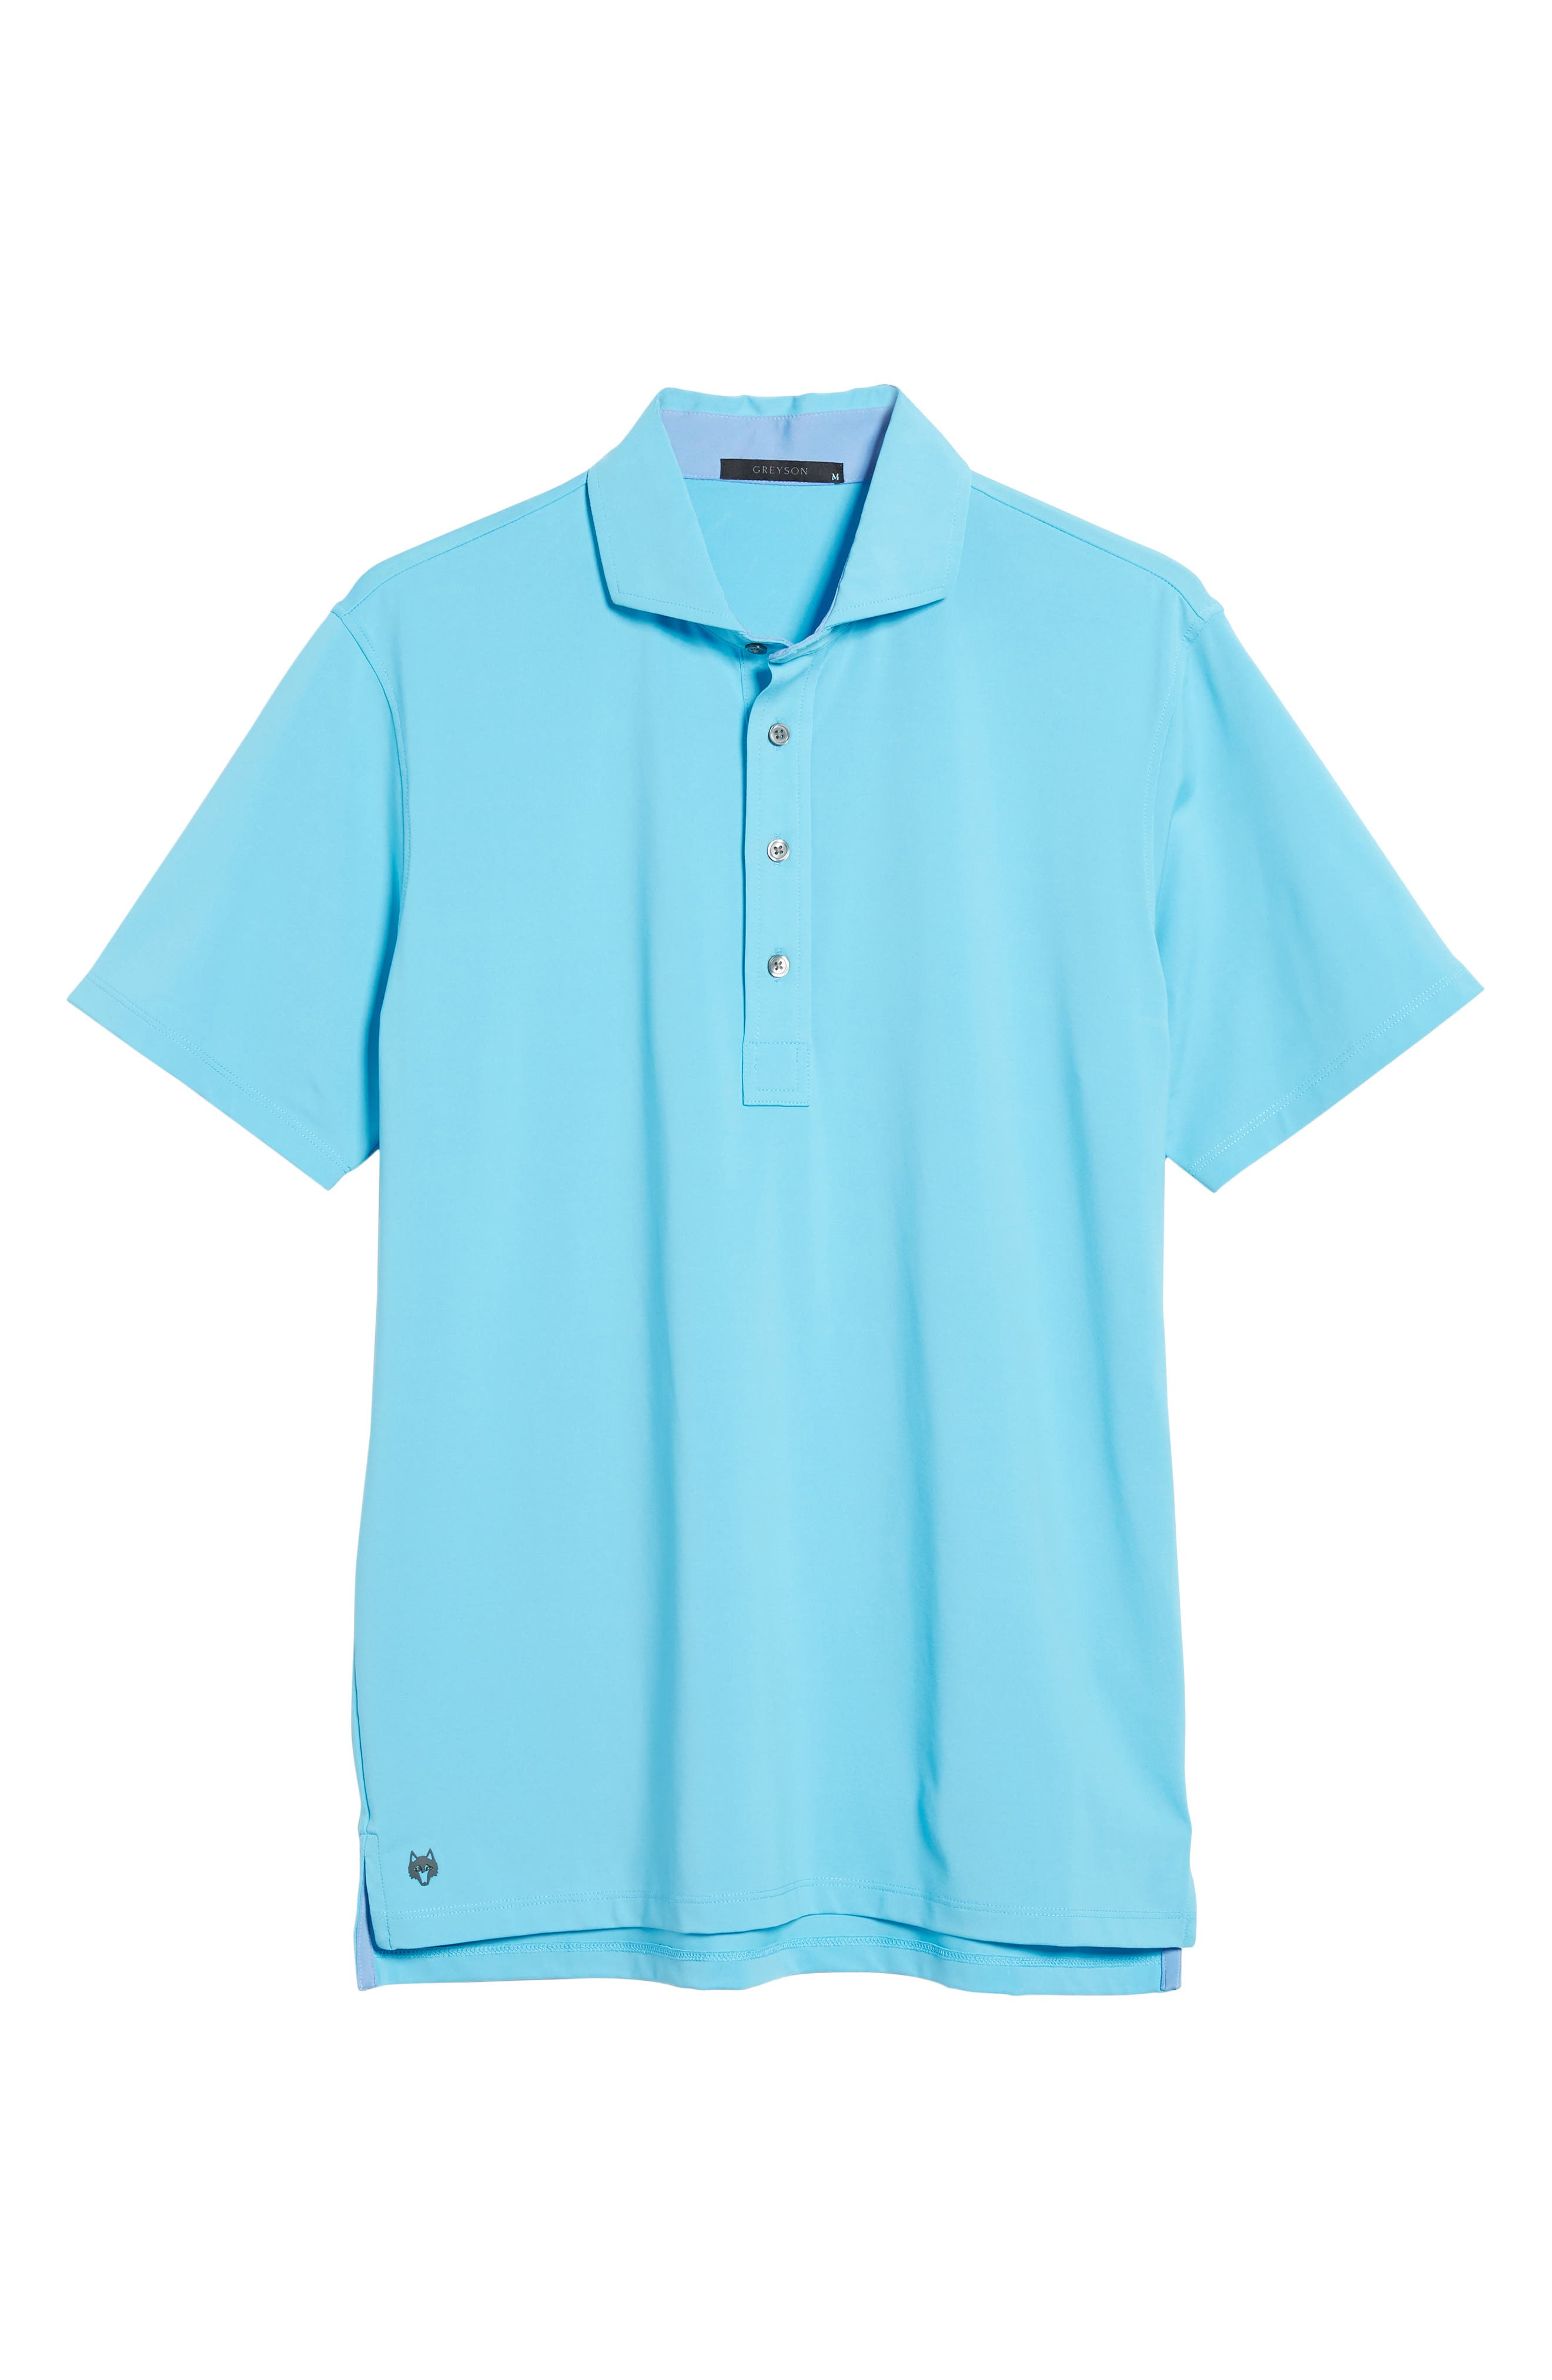 Tala Airflow Jersey Polo,                             Alternate thumbnail 6, color,                             Barracuda